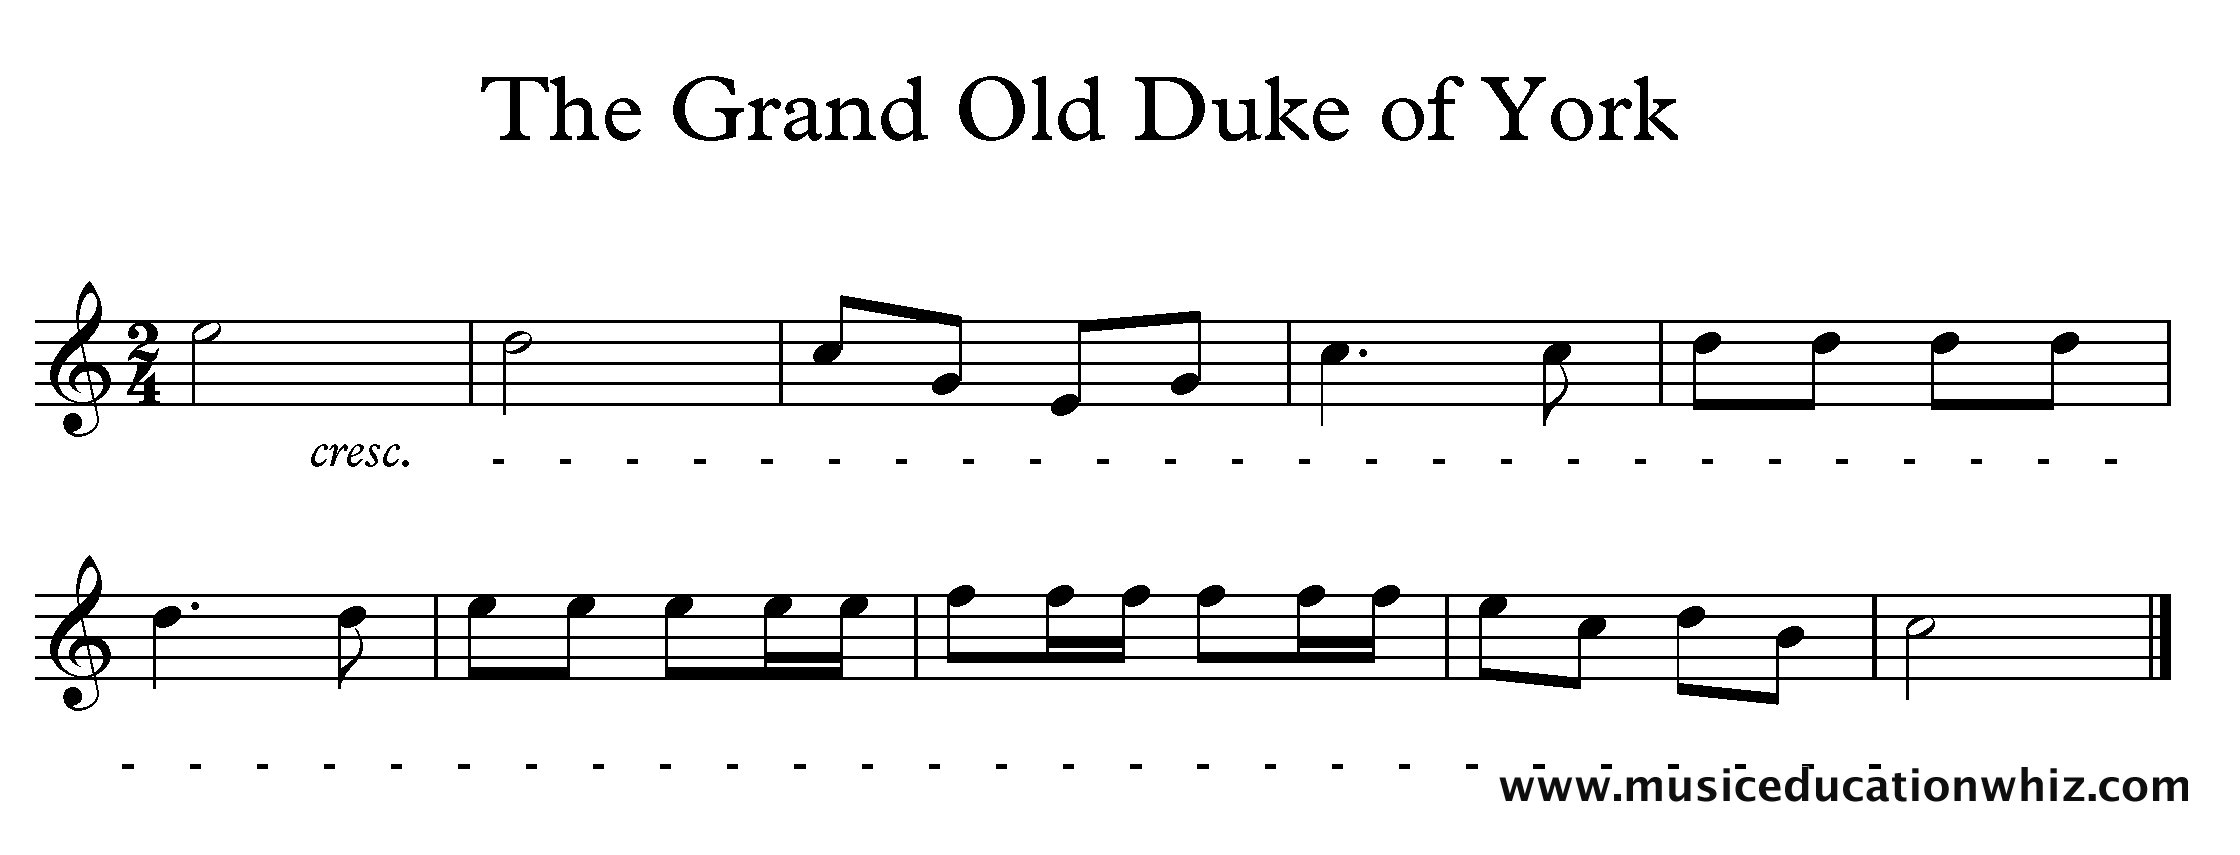 The Grand Old Duke of York melody with a cresc. followed by a dashed line to the end.